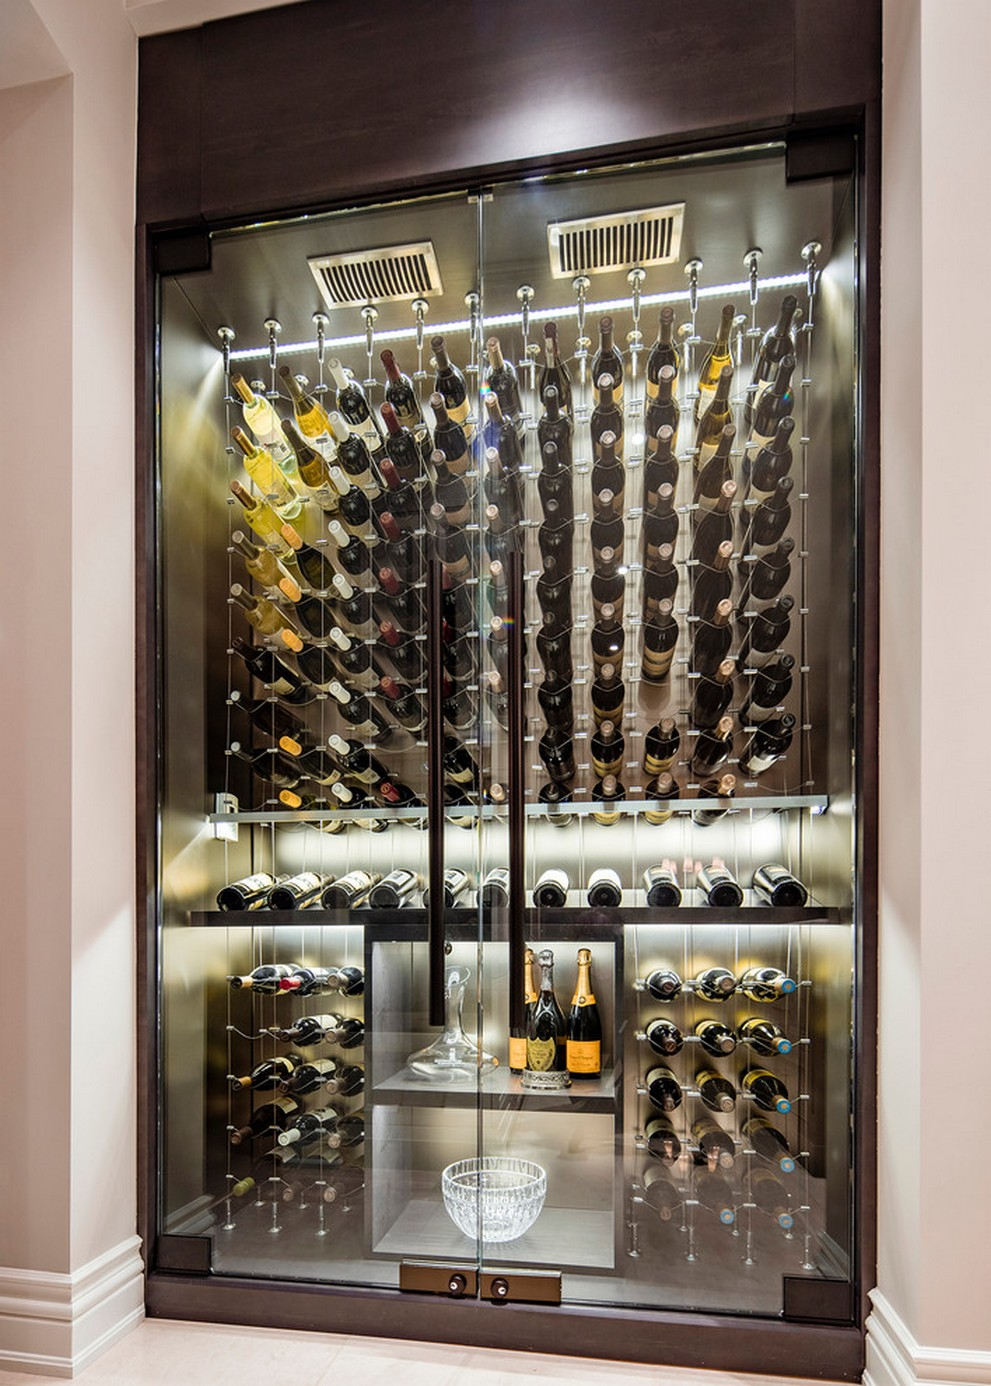 Hot Design Idea of Cellar You Must Know